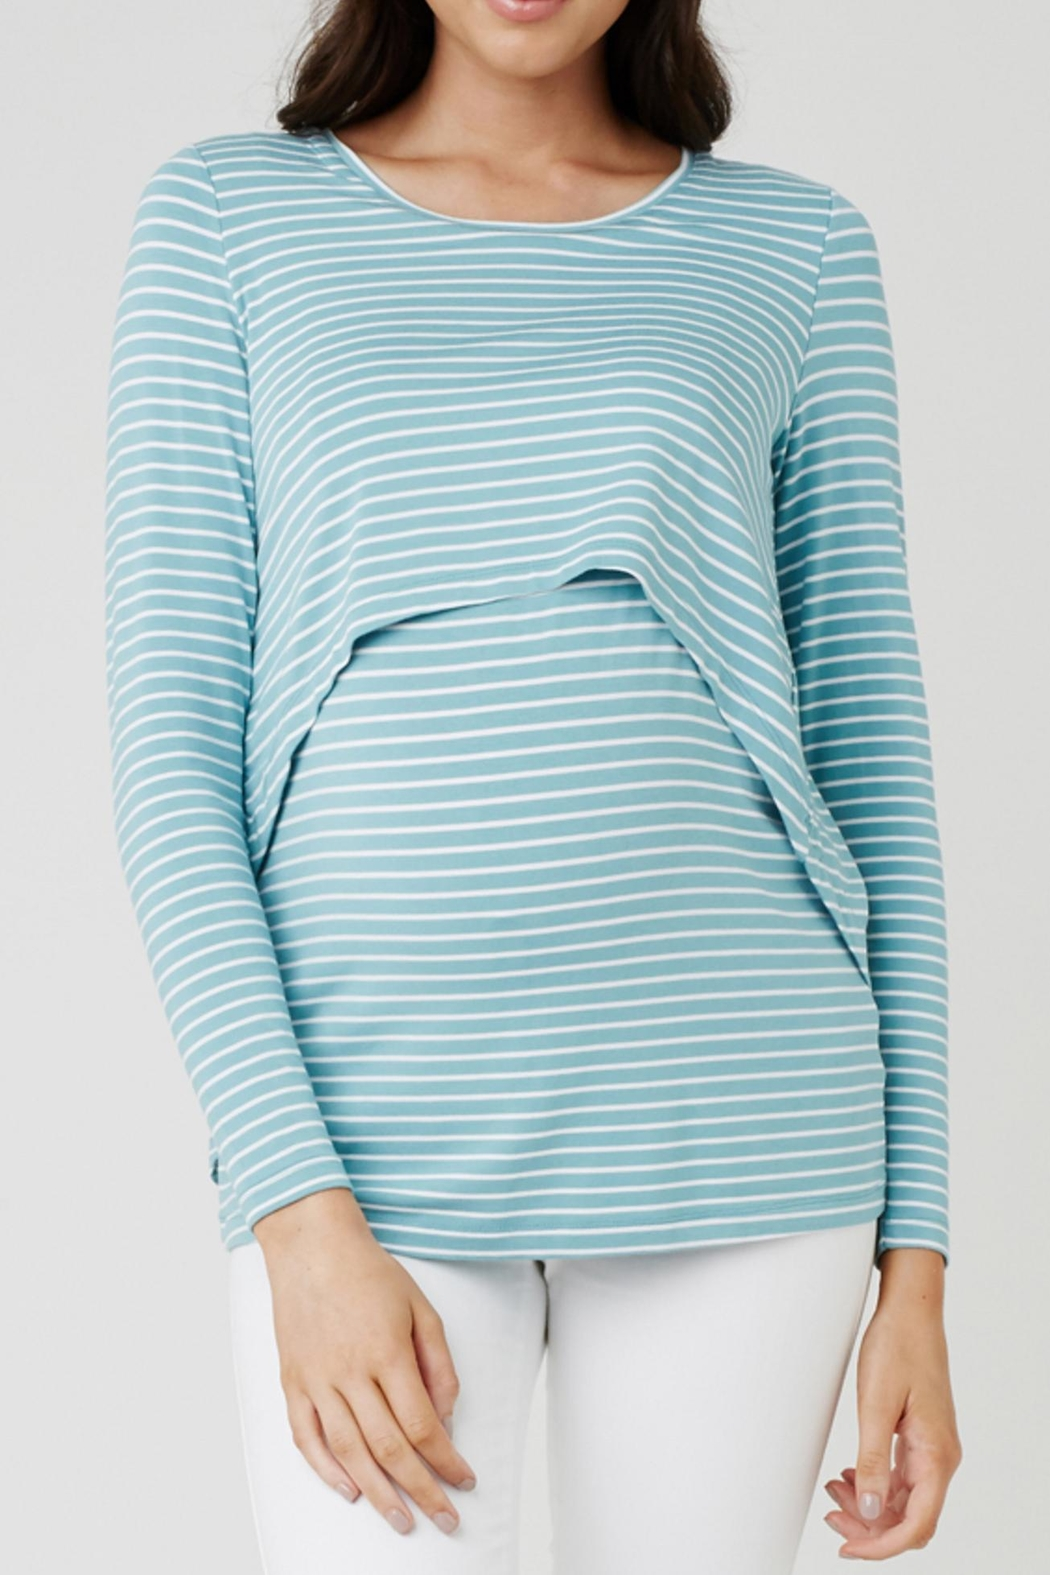 Ripe Maternity Turquoise Swing Top - Main Image